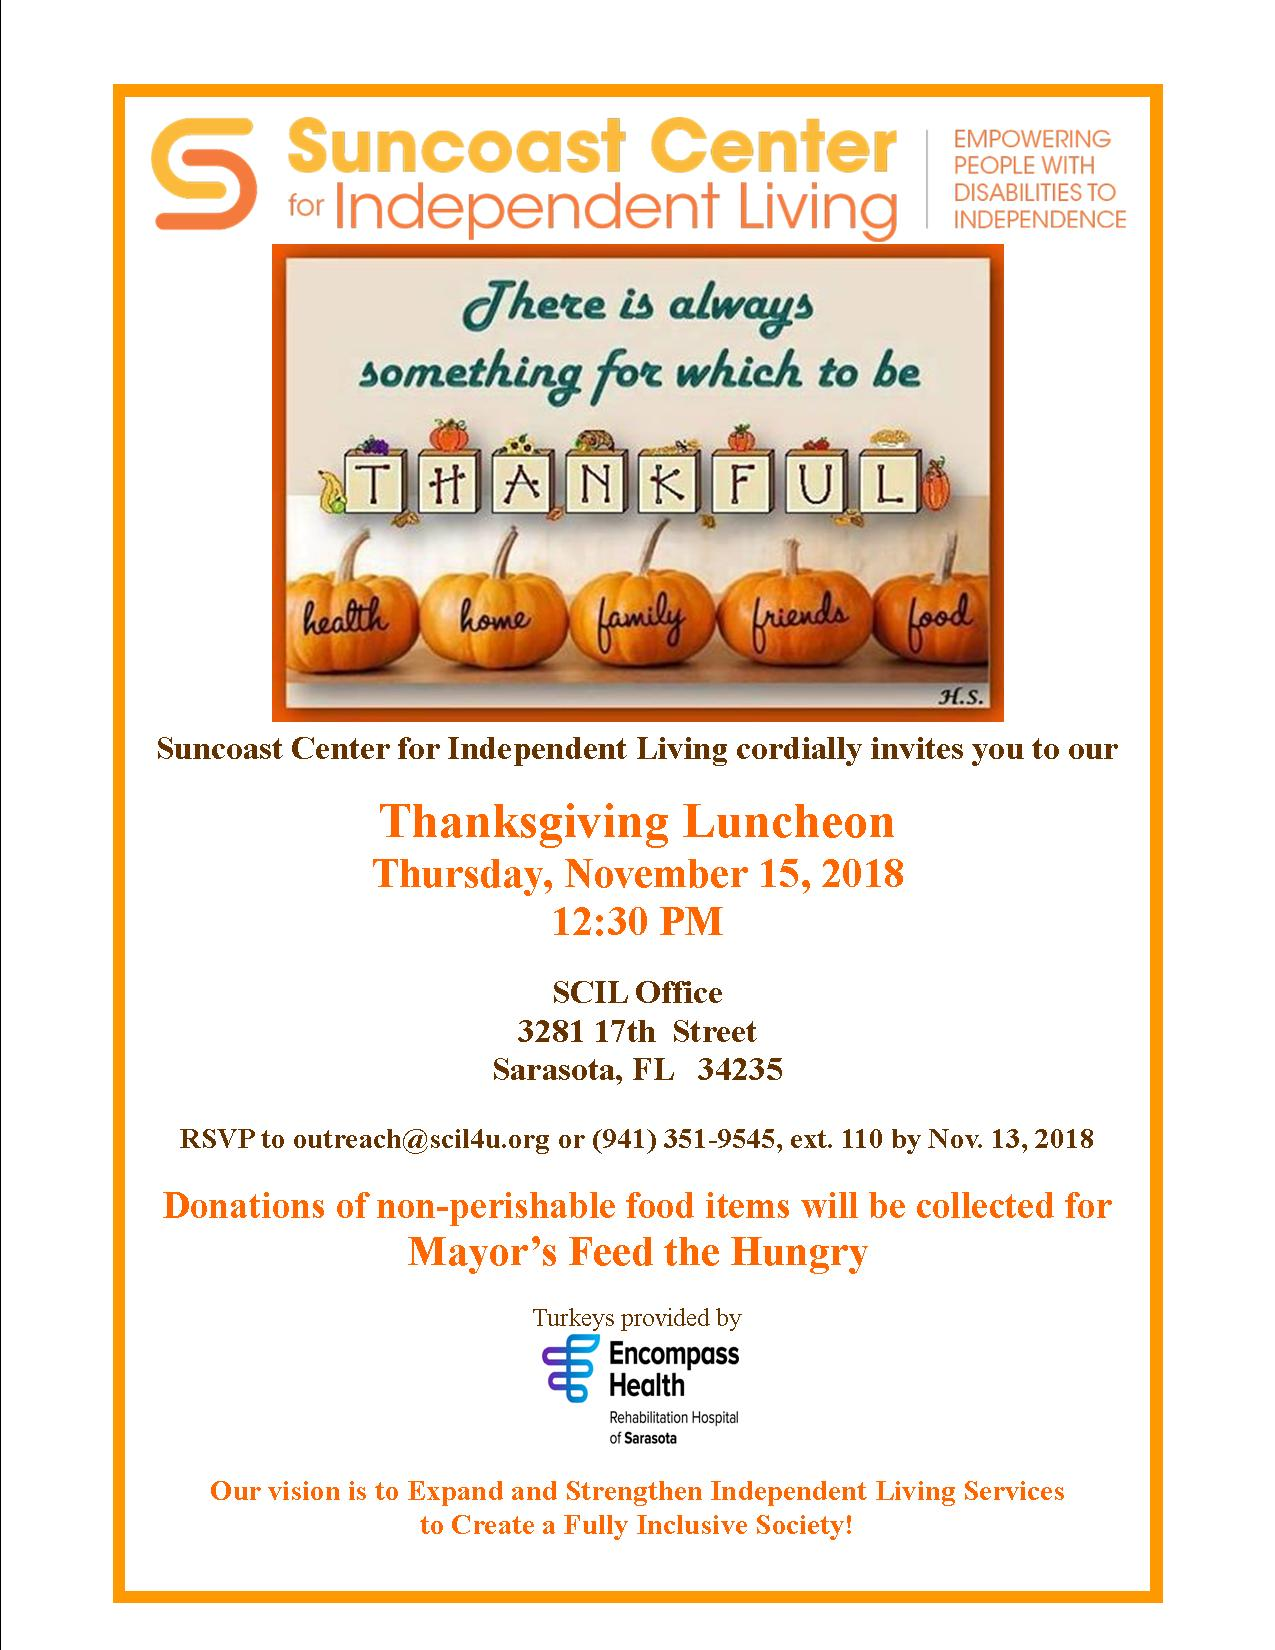 Join Us for Thanksgiving Luncheon | Suncoast Center for Independent